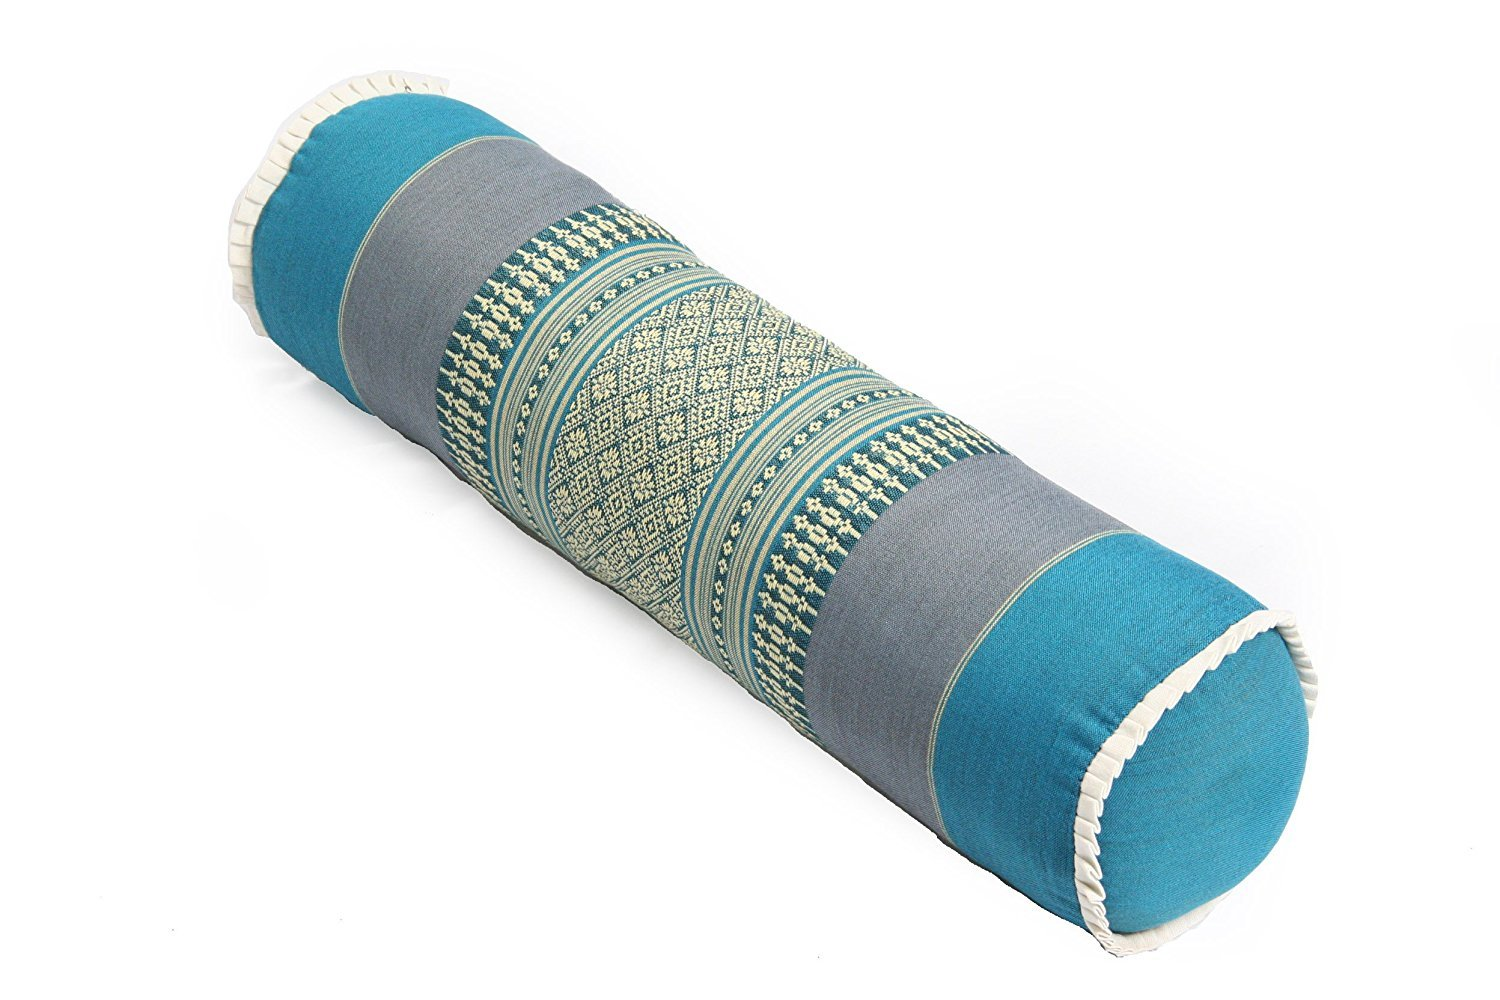 Thailand: Bolster Pillow Blue, Striped Thailand, Size: 19.5''x 5.5'' inches By Conserve Brand by Conserve's OTOP